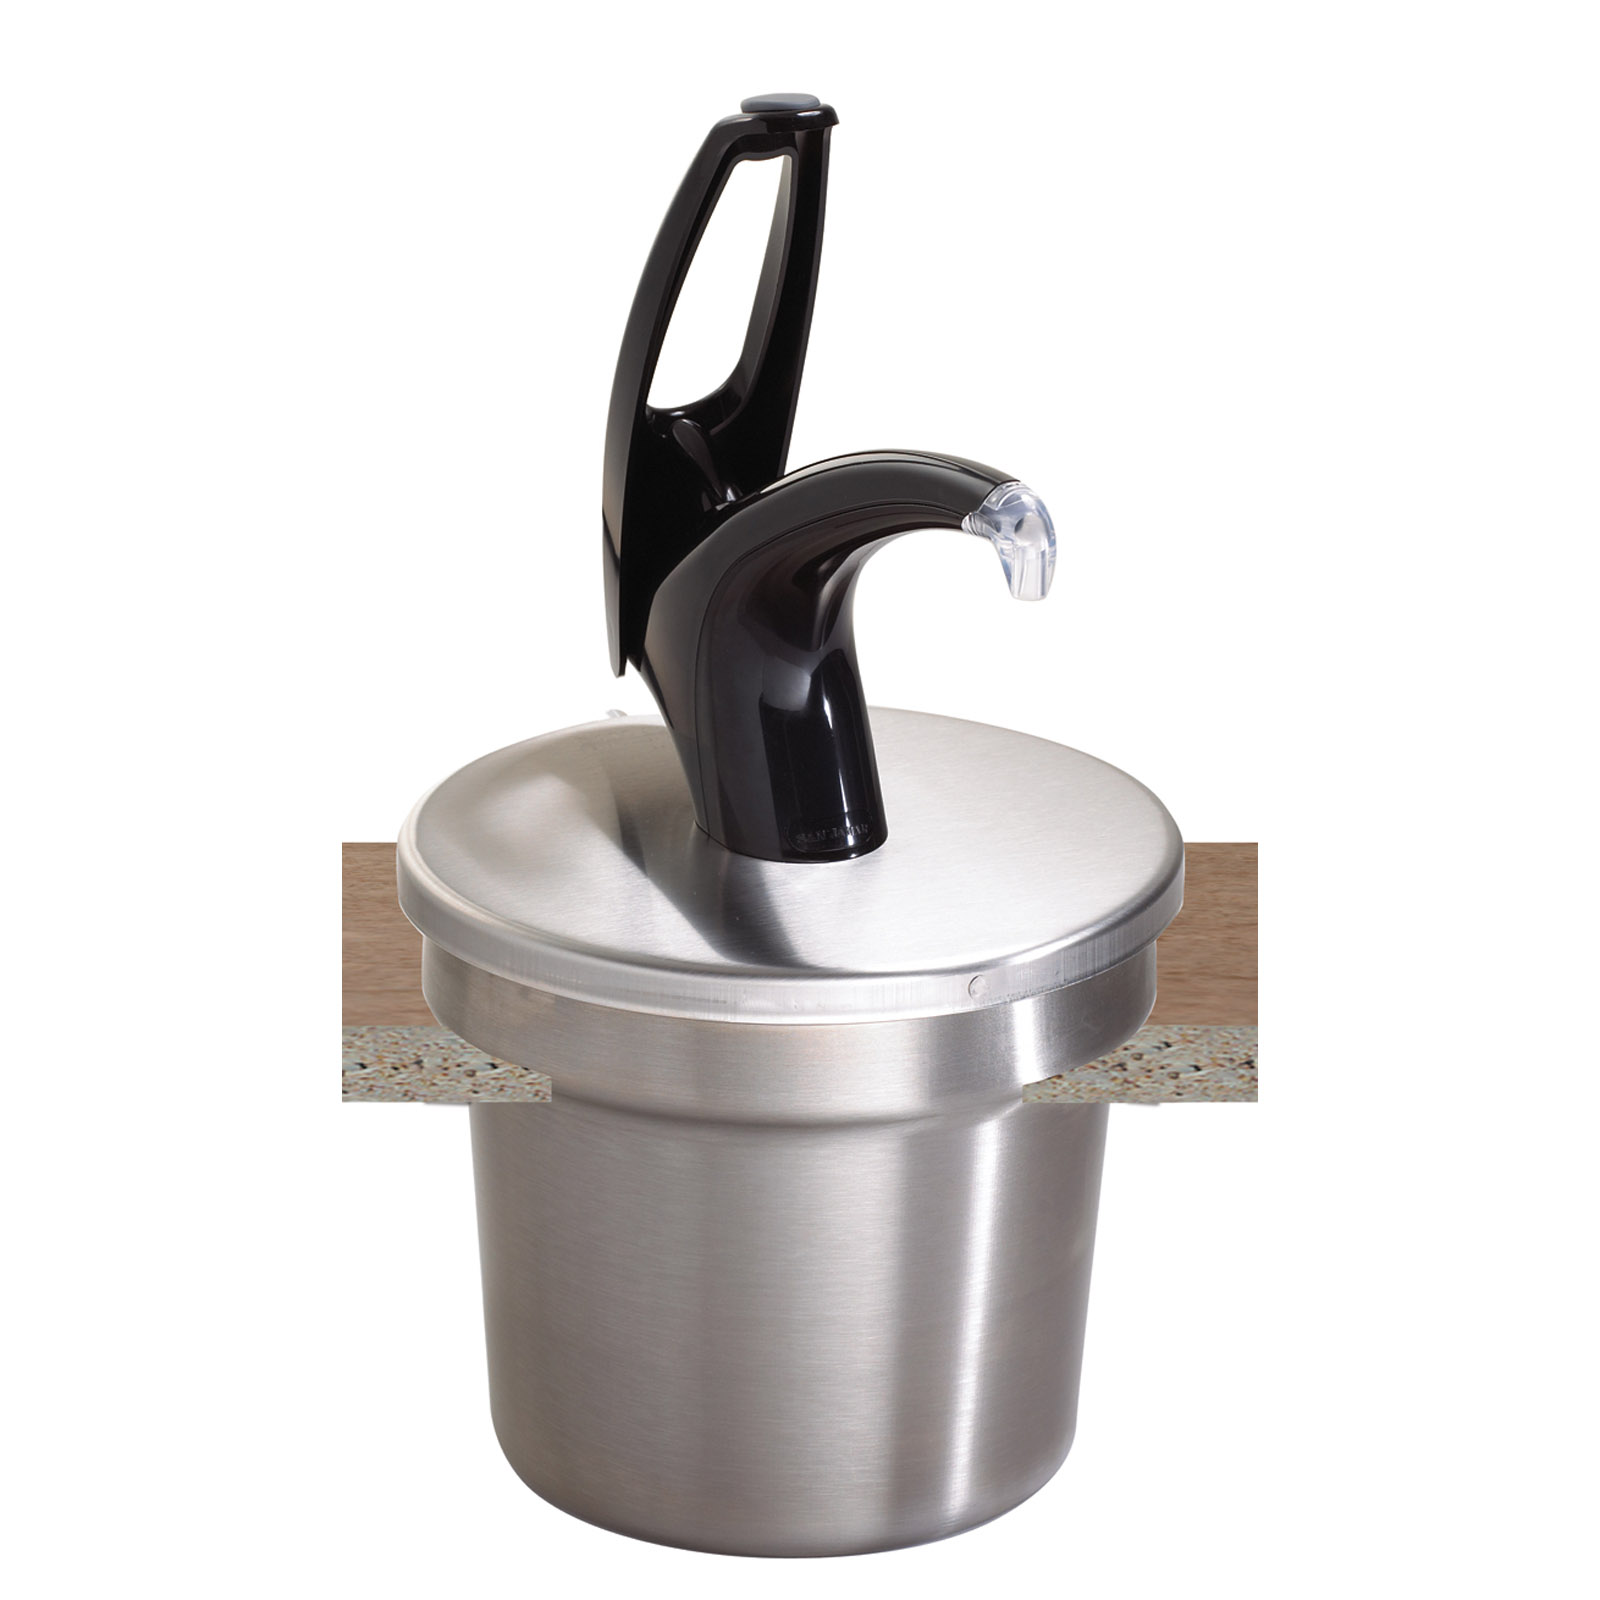 San Jamar P4710BK condiment dispenser pump-style